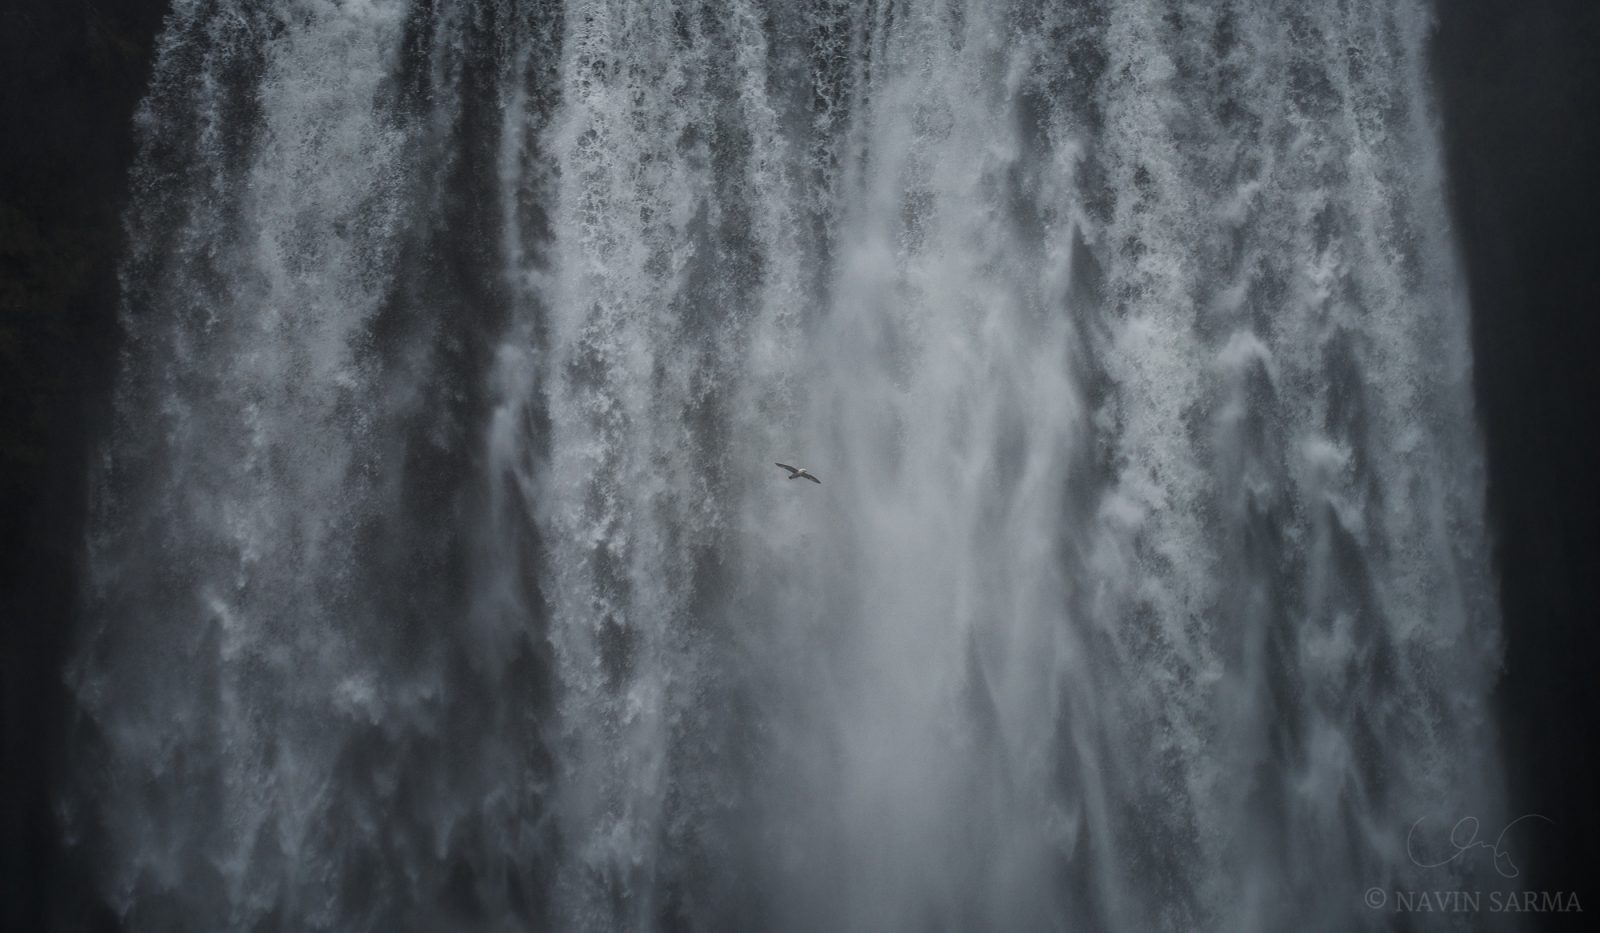 A seagull soars across the massive Skógafoss waterfall in search of food